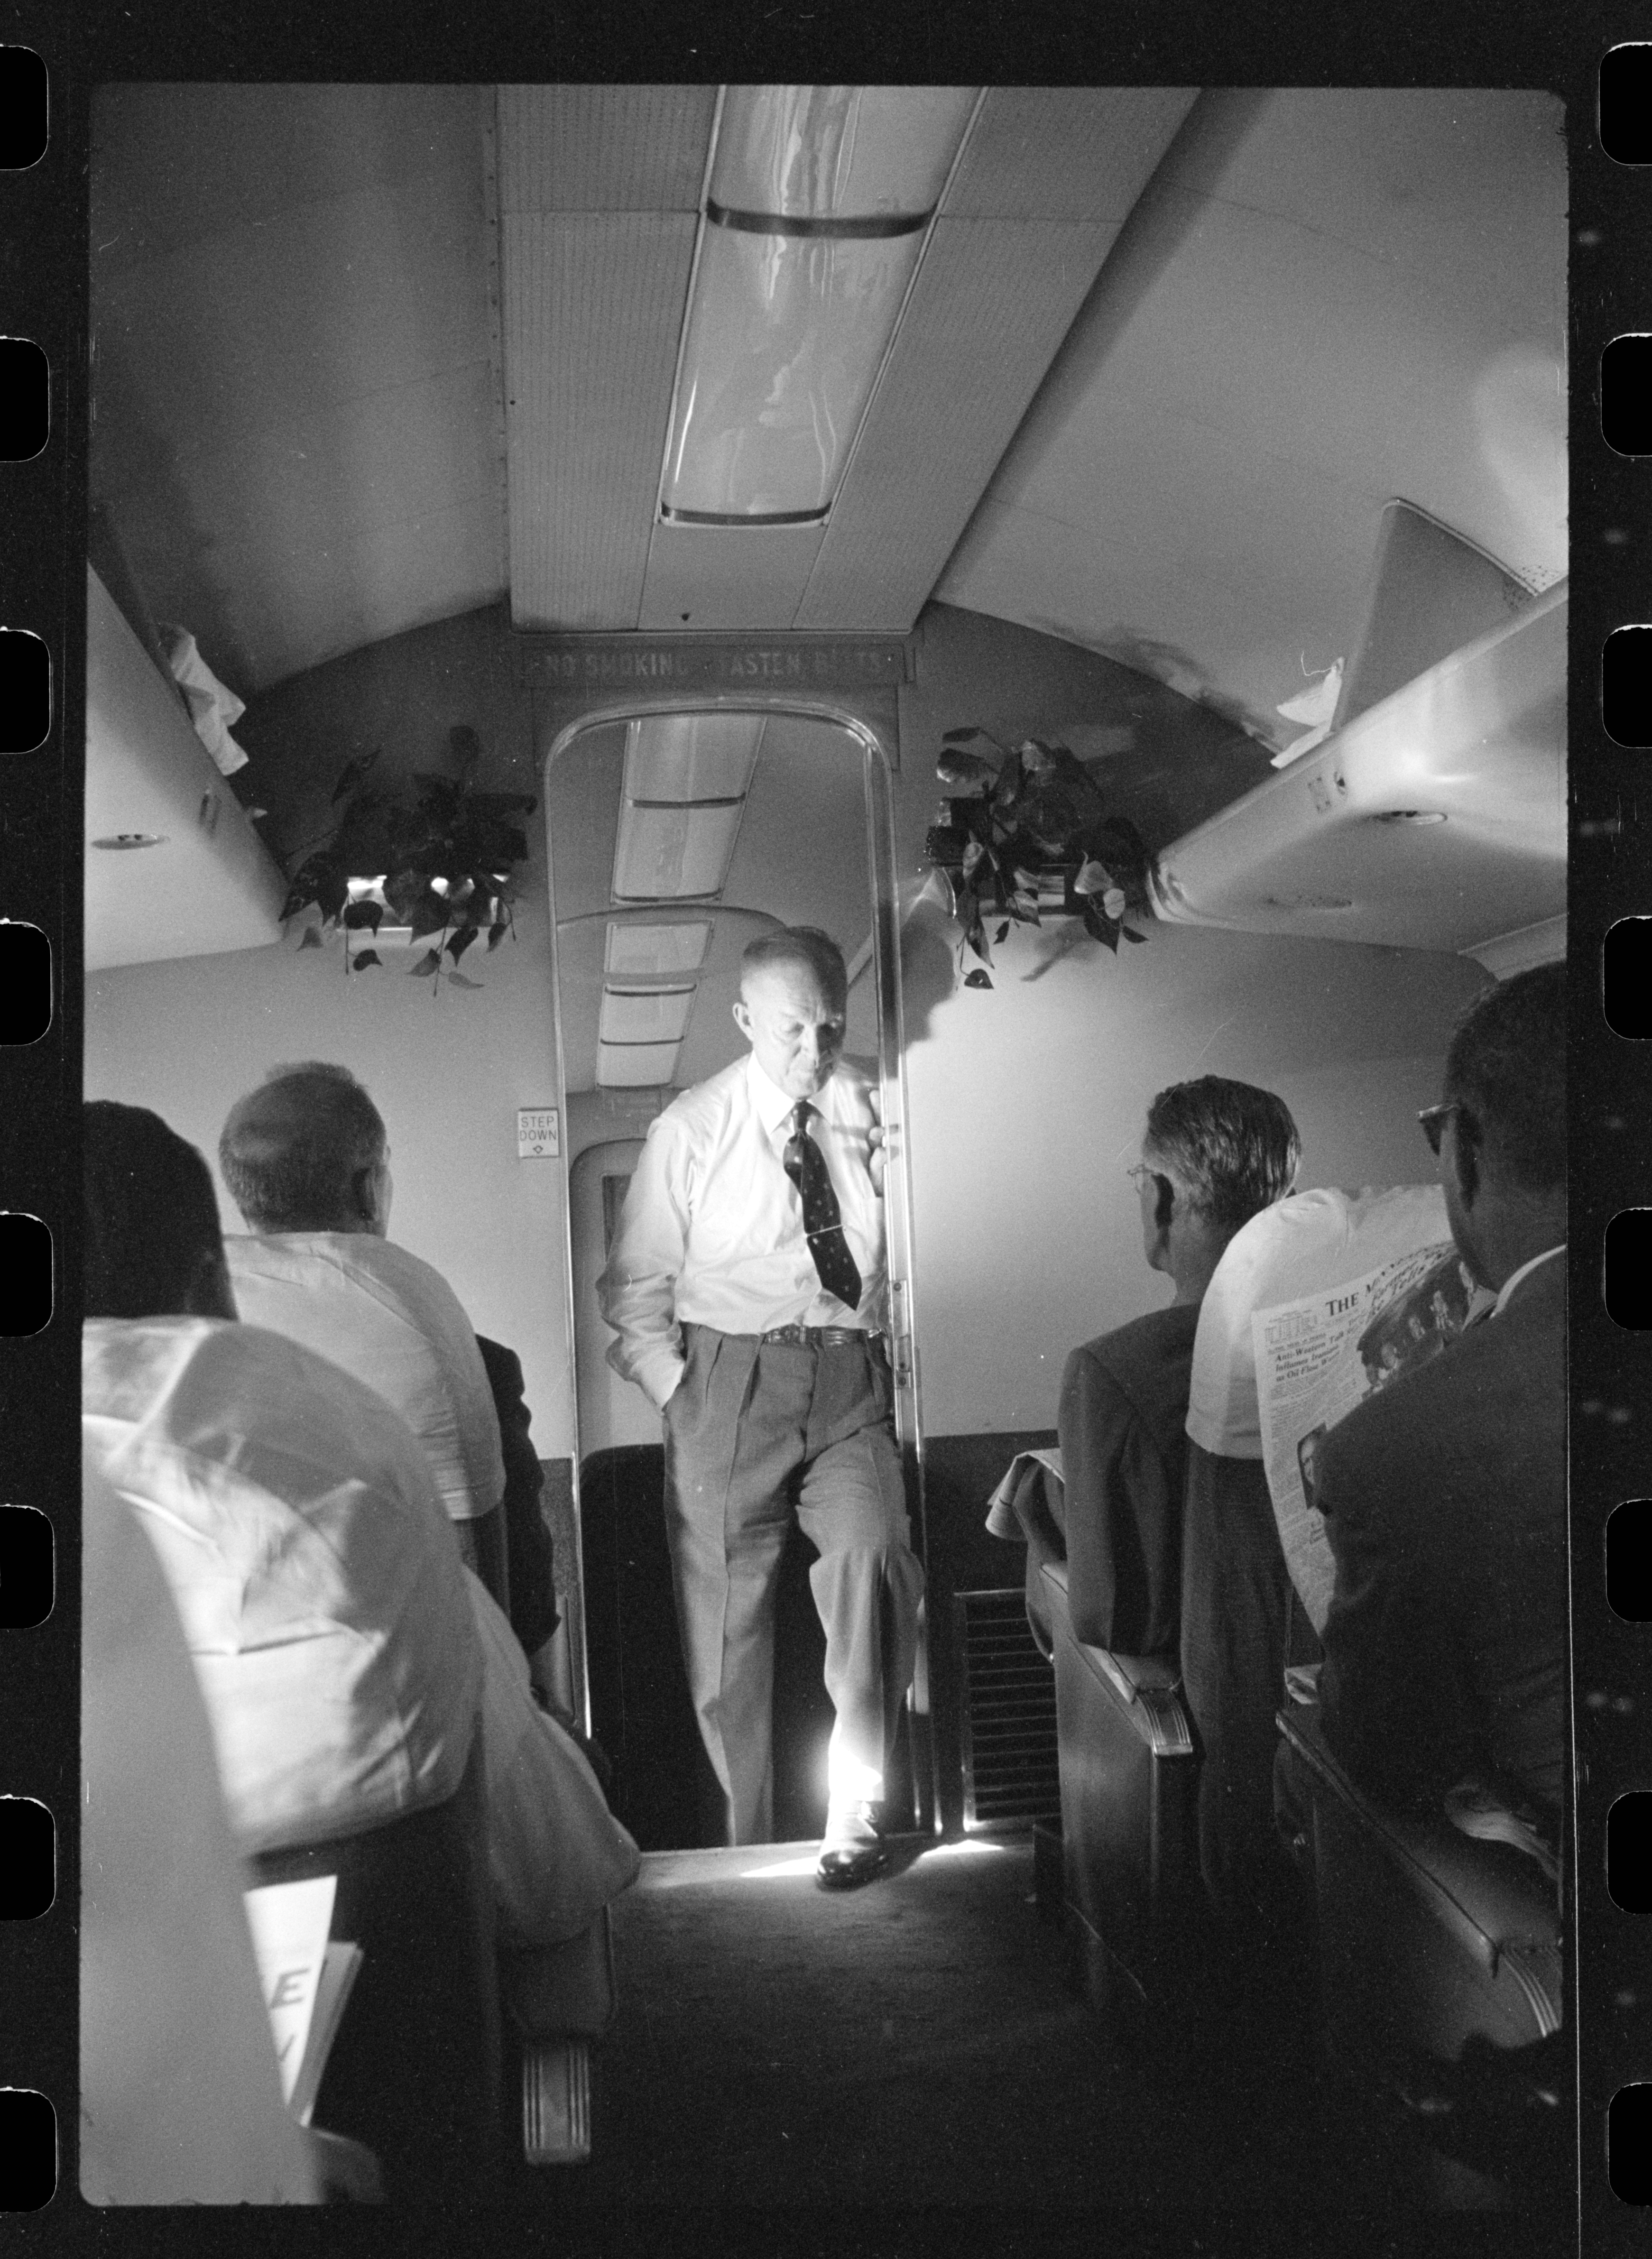 Republican presidential candidate Dwight D. Eisenhower talking with reporters(?) on his campaign airplane.jpg